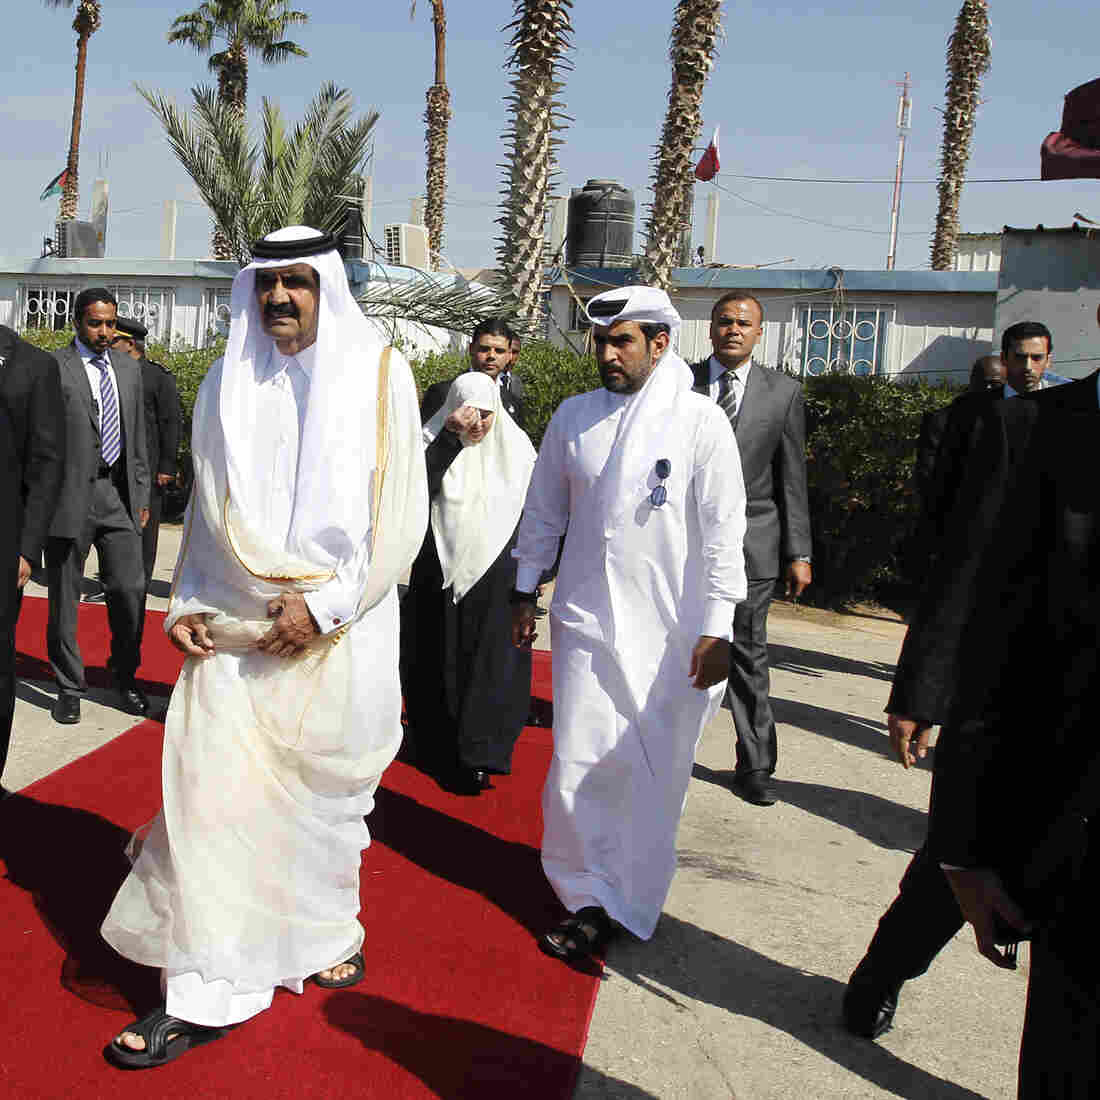 Qatari Emir Sheikh Hamad bin Khalifa al-Thani (center right) walks alongside Gaza's Hamas prime minister Ismail Haniya (center left) during a welcome ceremony at the Rafah border crossing with Egypt on Tuesday.